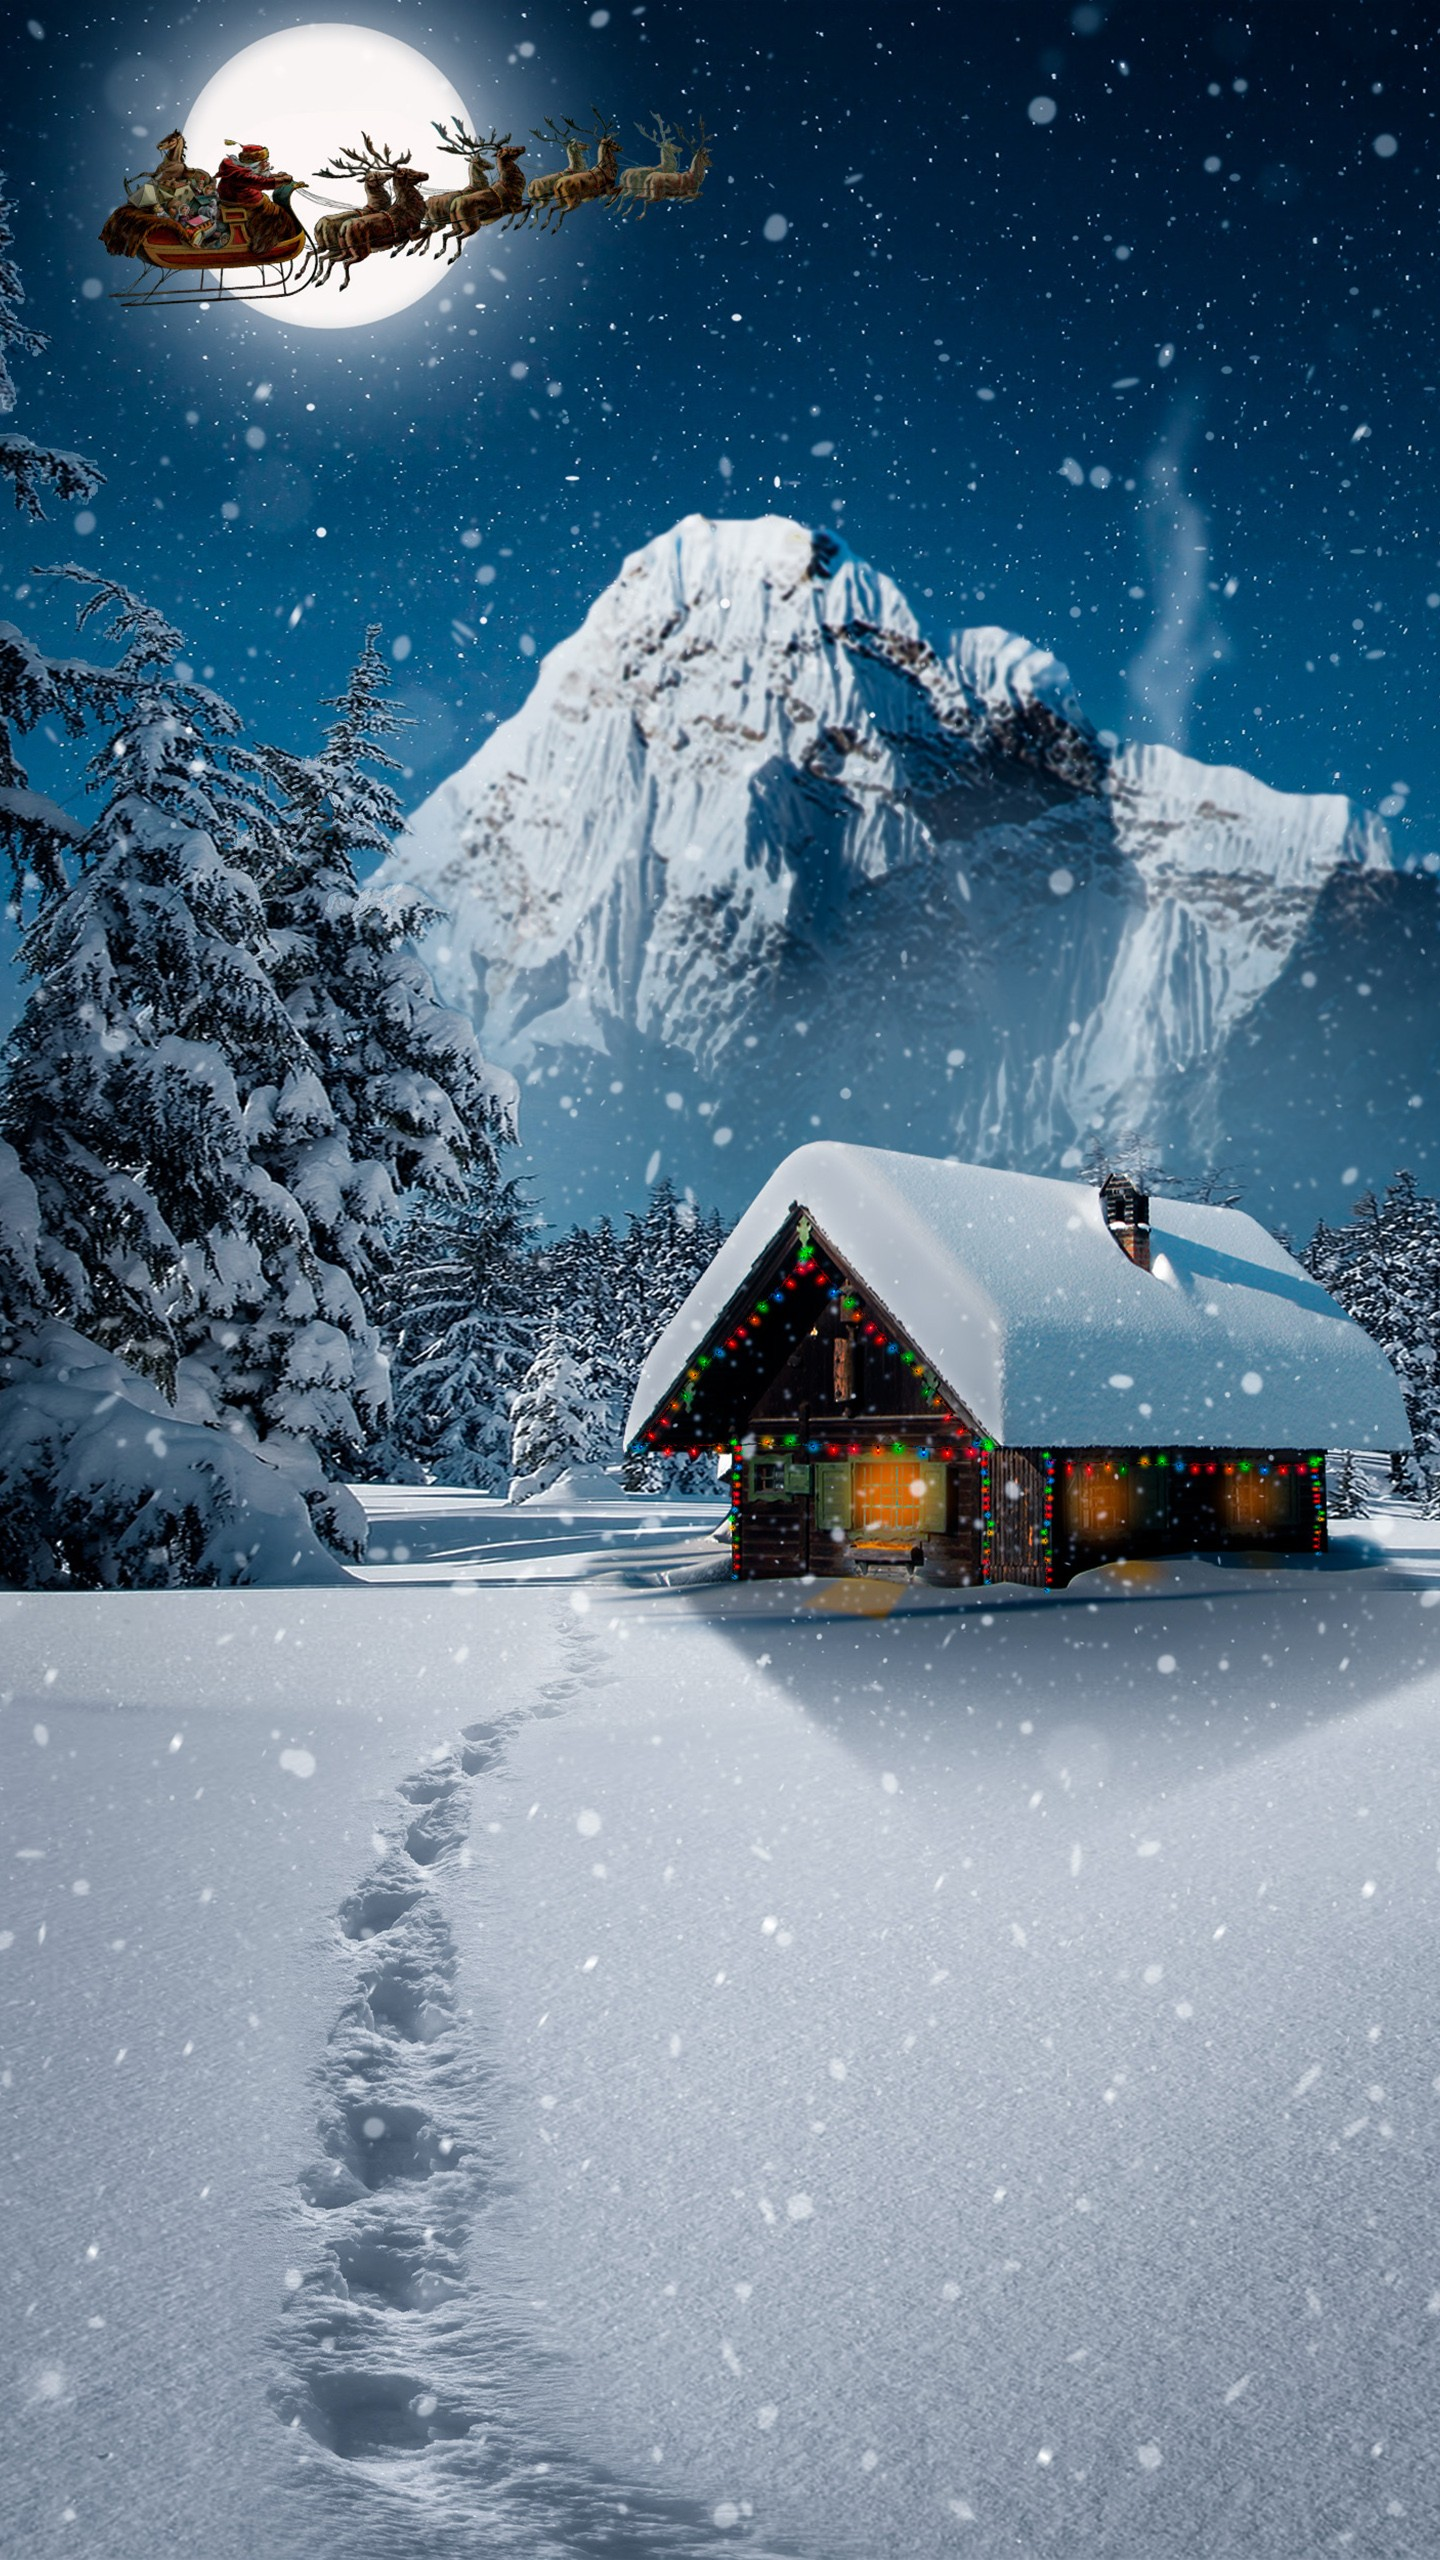 Christmas Landscape Wallpaper Hd 1440x2560 Wallpaper Teahub Io